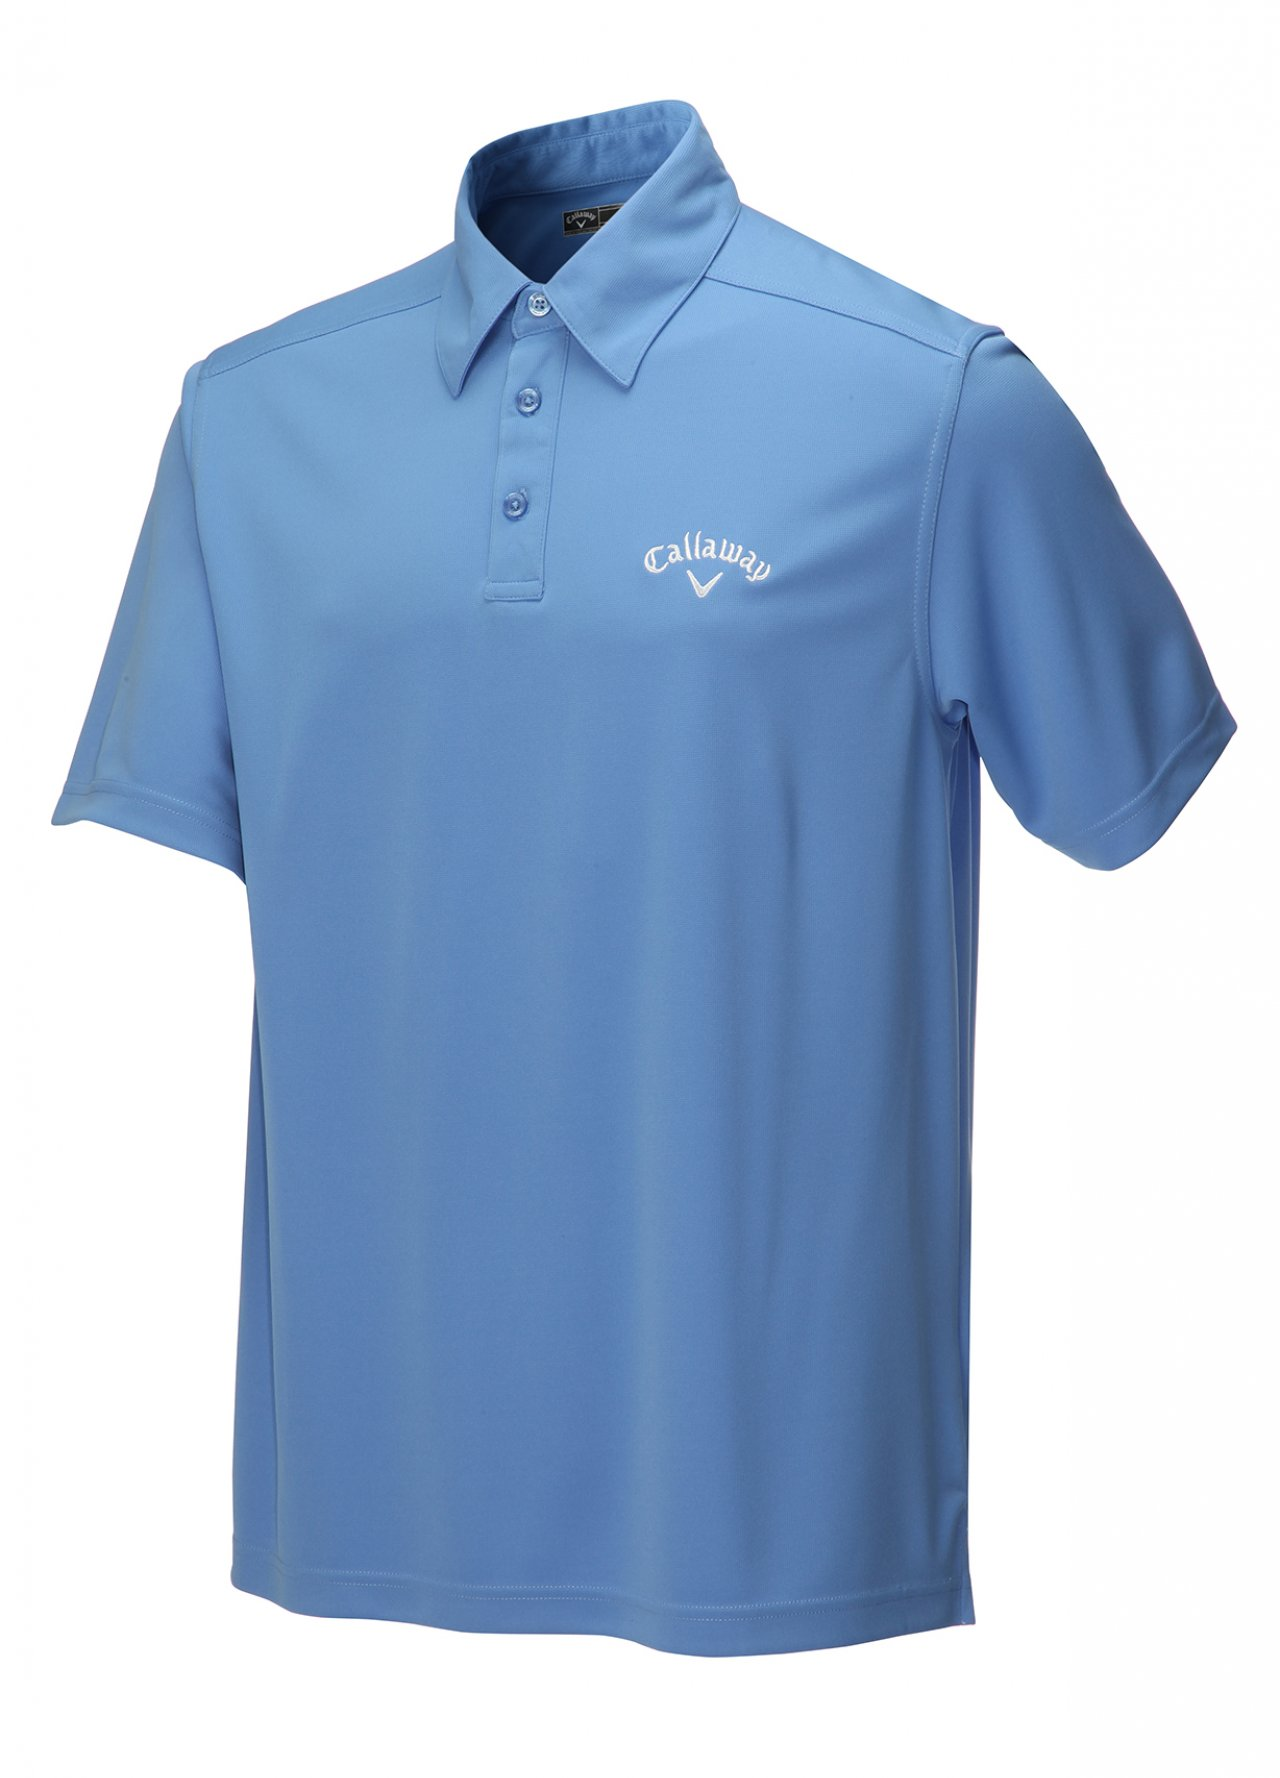 Golf sale discount golf clothes online county golf for The tour jacket polo shirt